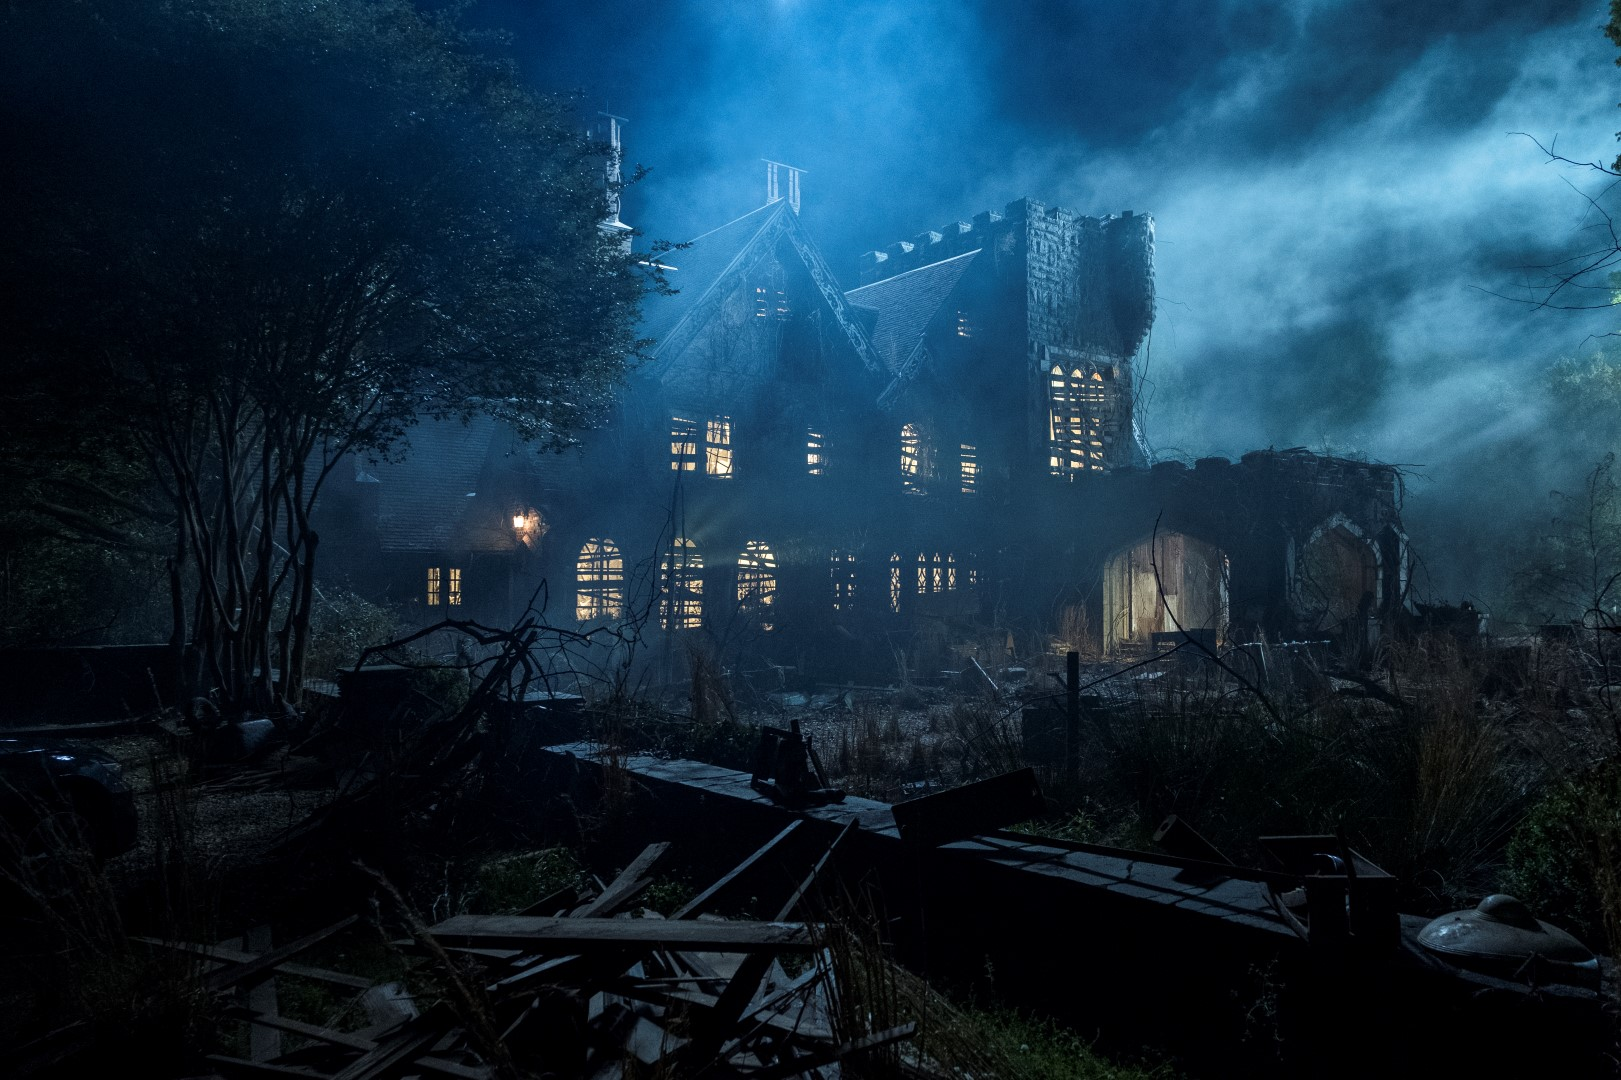 The Haunting of Hill House Netflix 2018